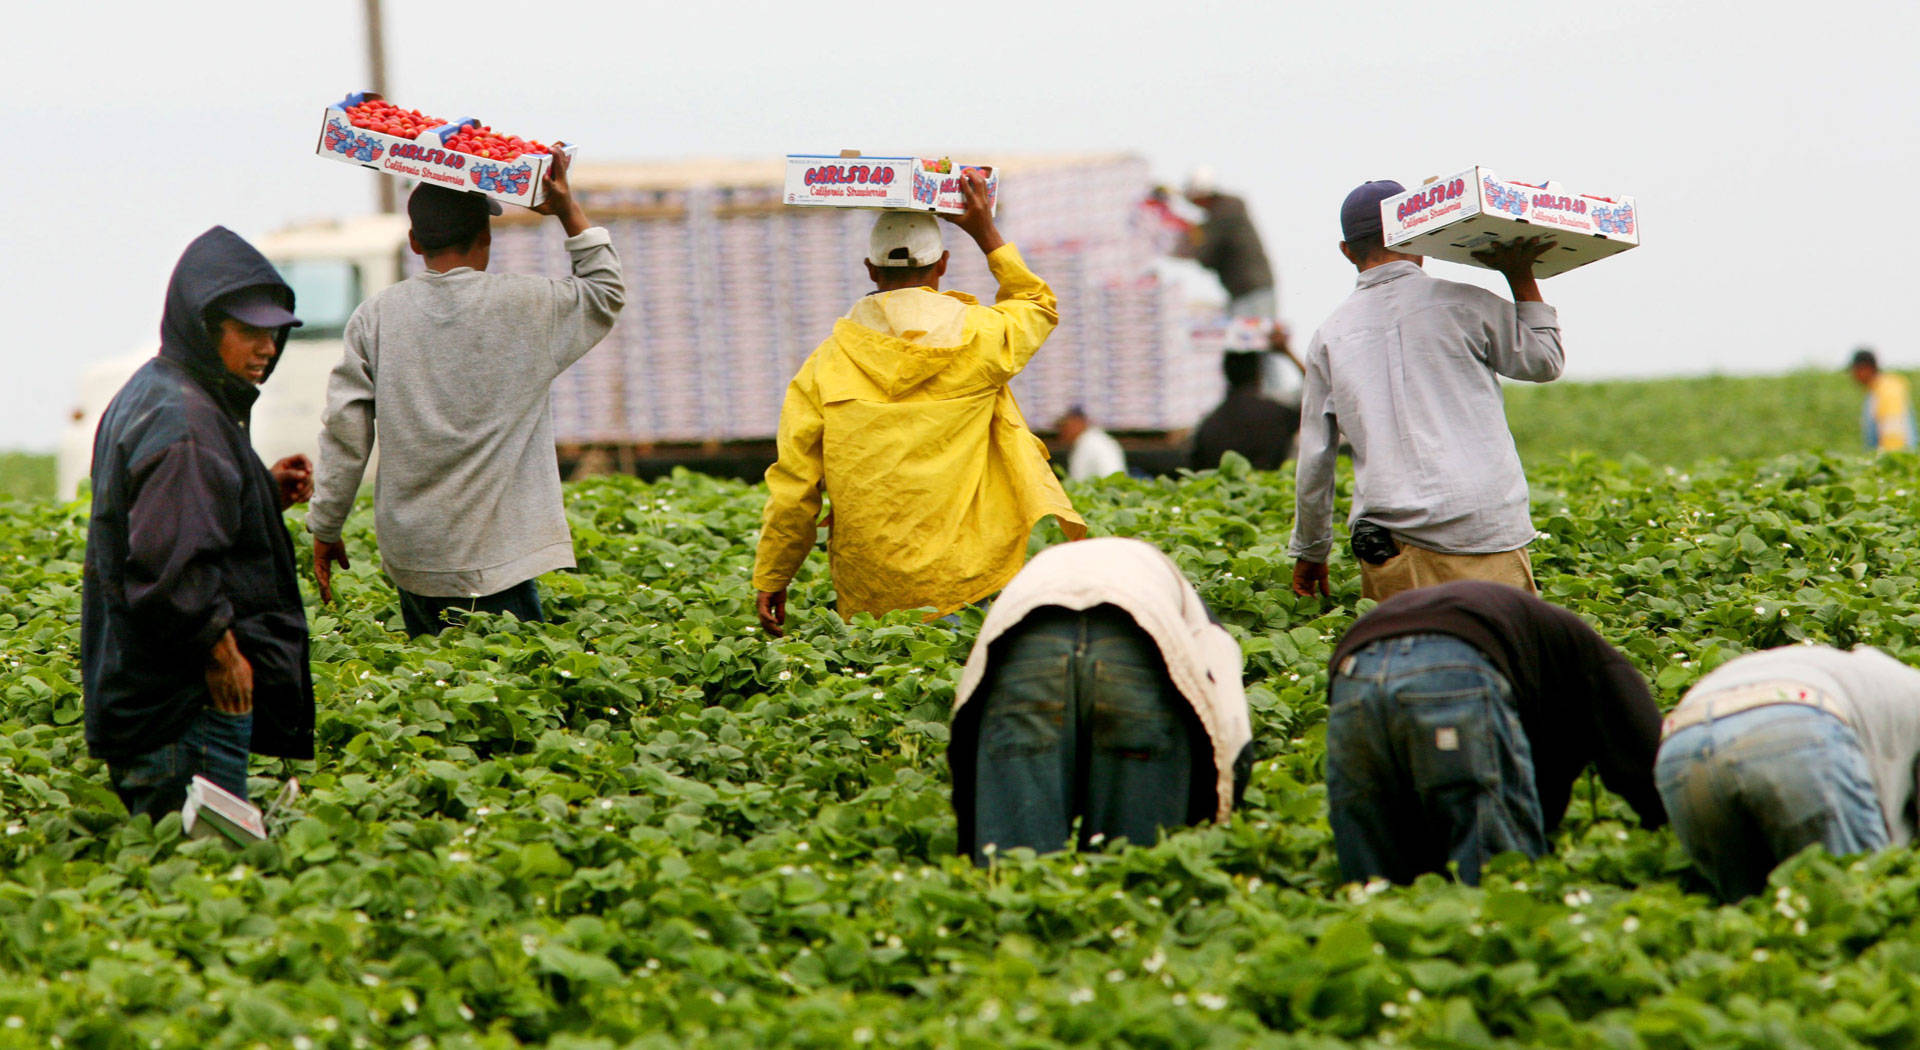 Farmworkers harvest strawberries in Carlsbad. Sandy Huffaker/Getty Images